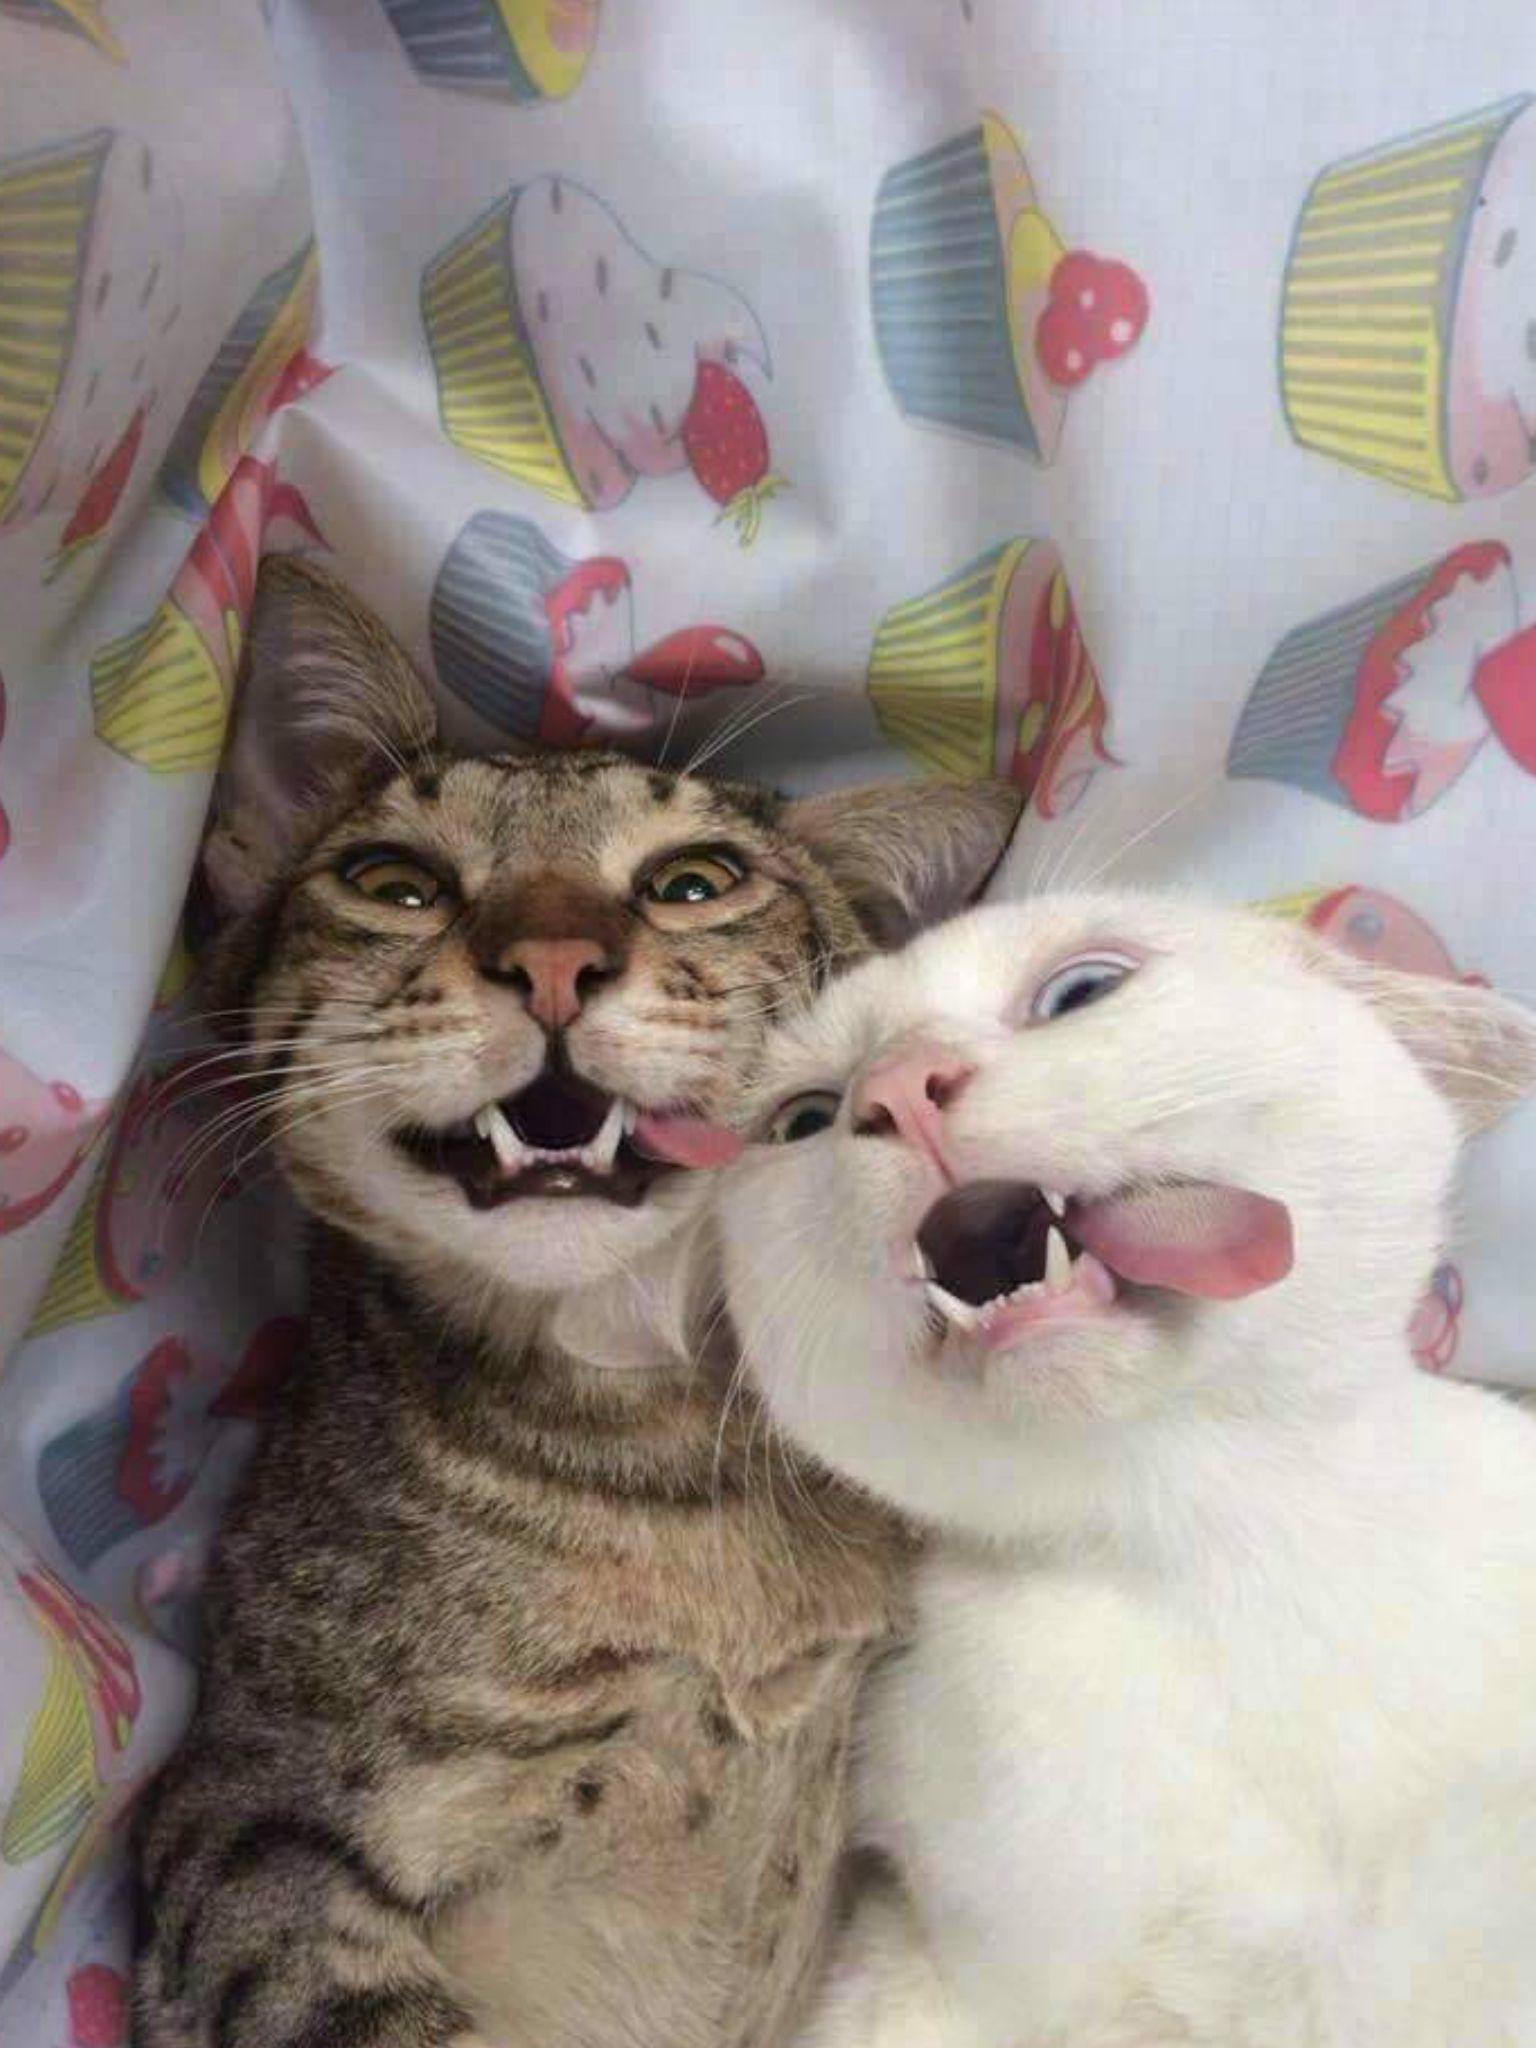 Pin By Kat Rocker On Cat Cute Cats Crazy Cats Funny Animals